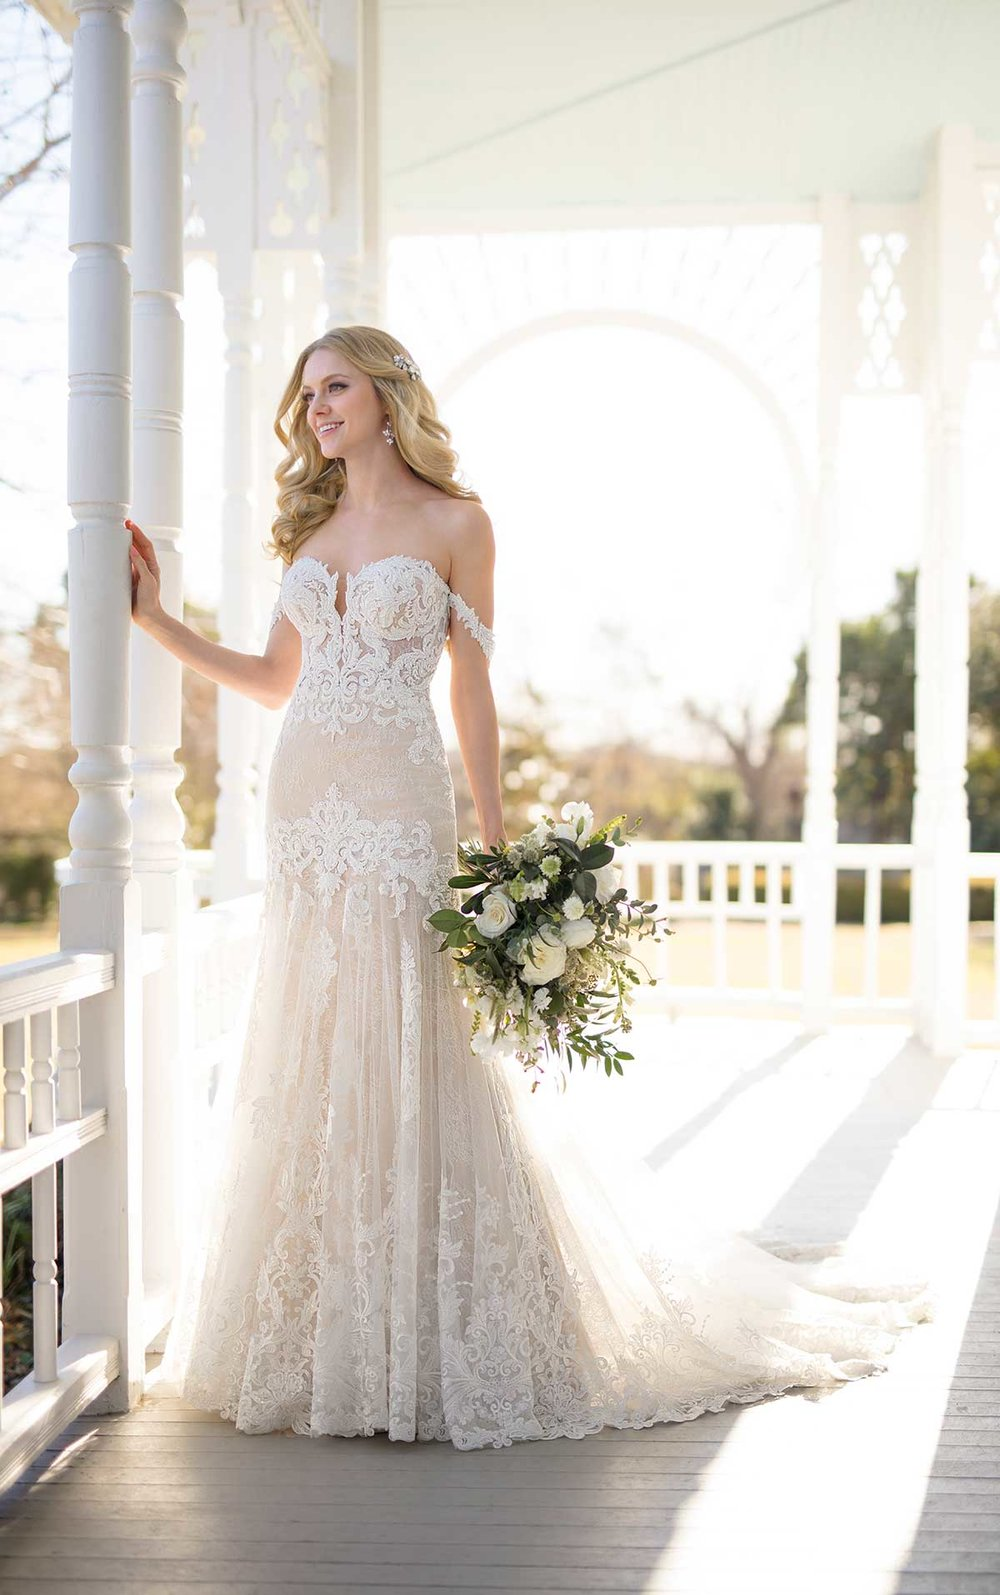 Martina Liana wedding gowns can be completely customized according to your wishes, and they are available at Bon Bon Belle.